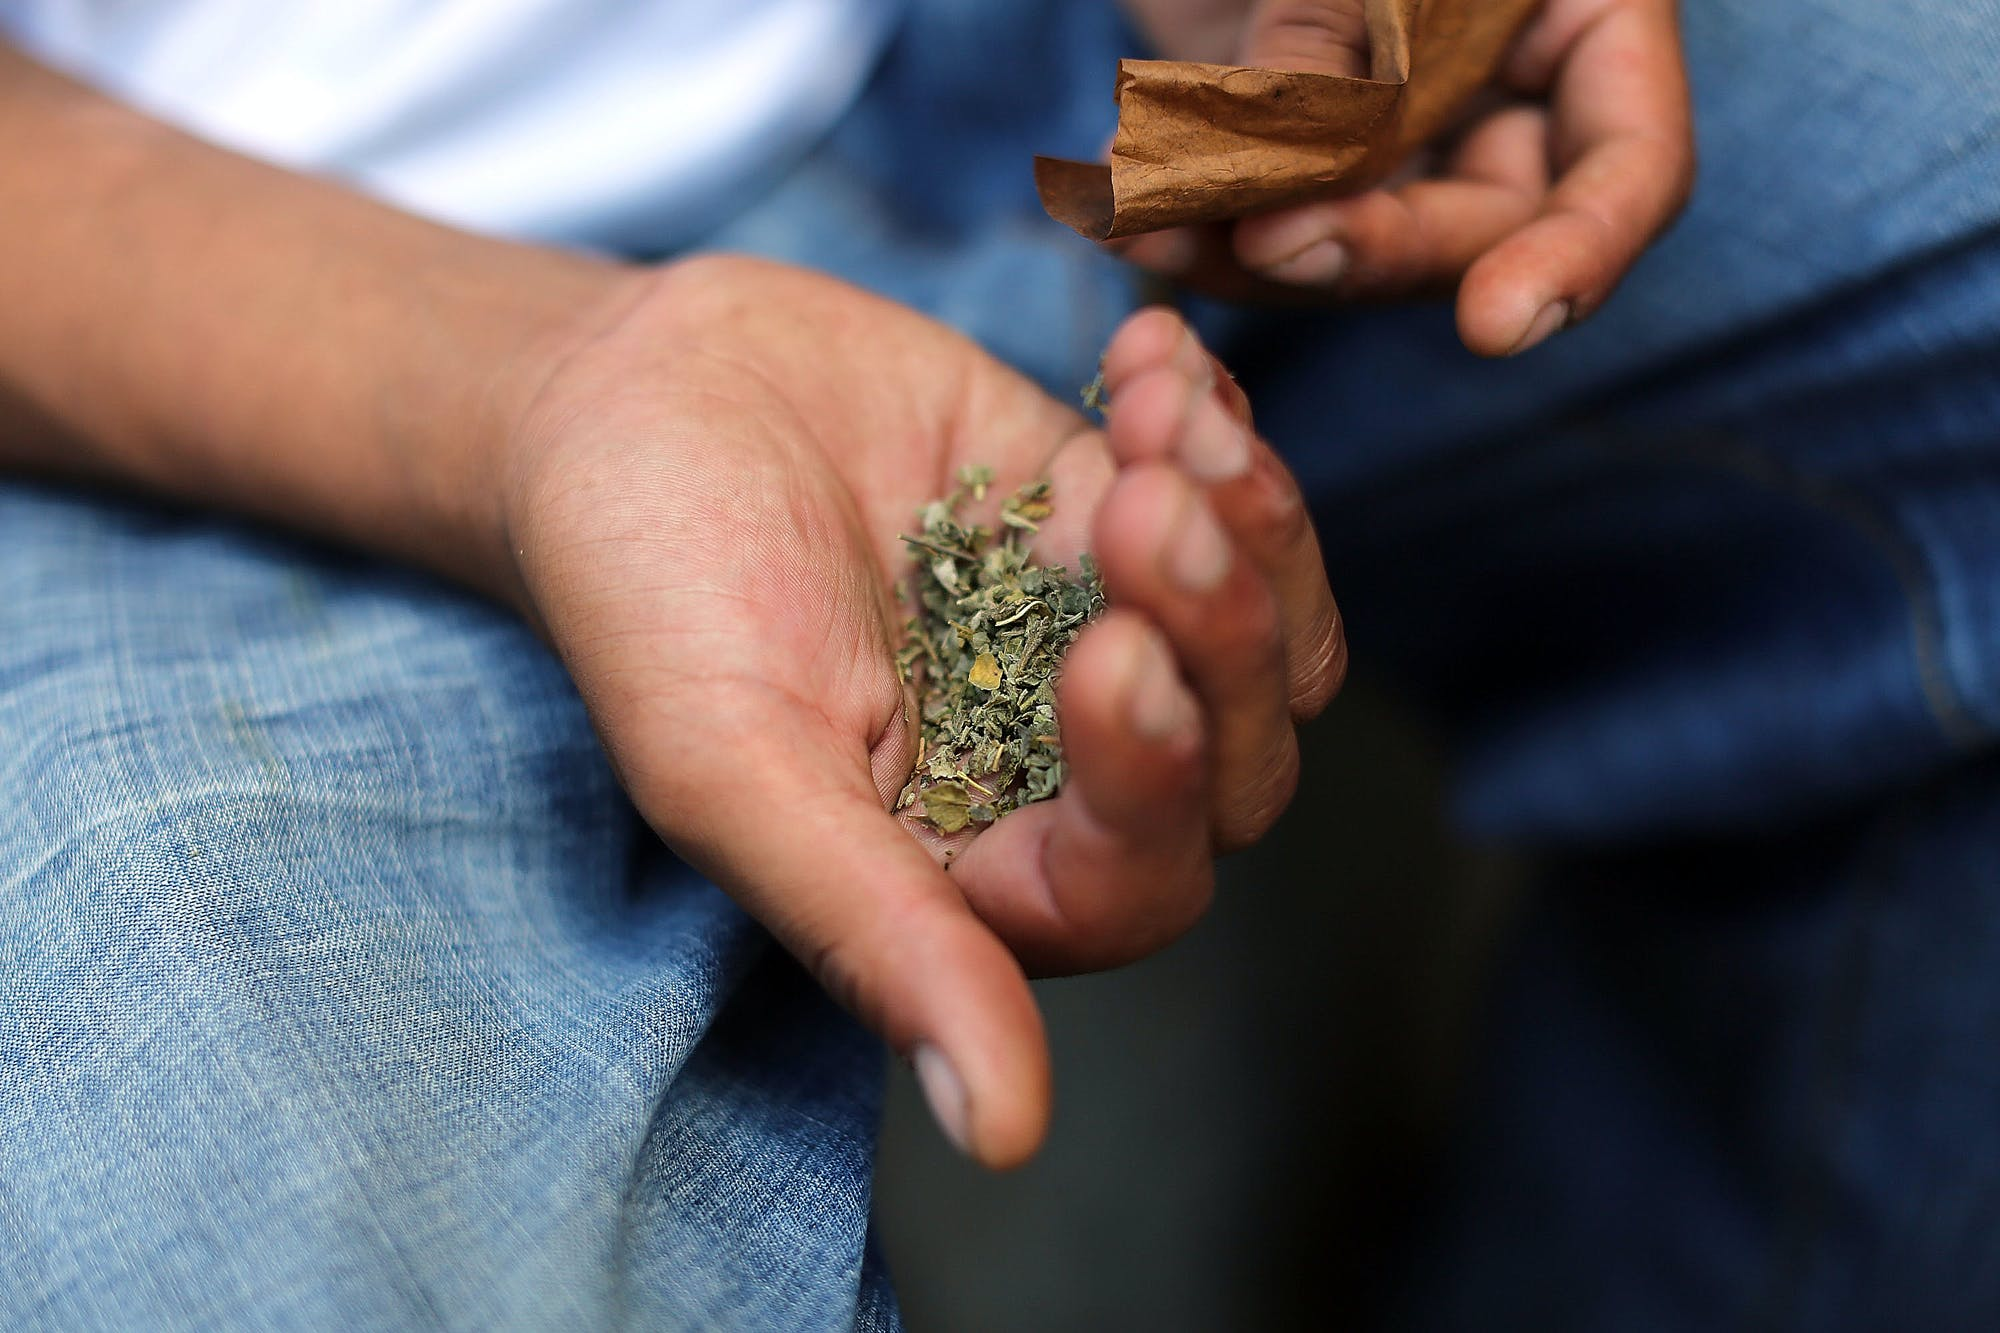 K2Spice How to microdose weed and treat anxiety